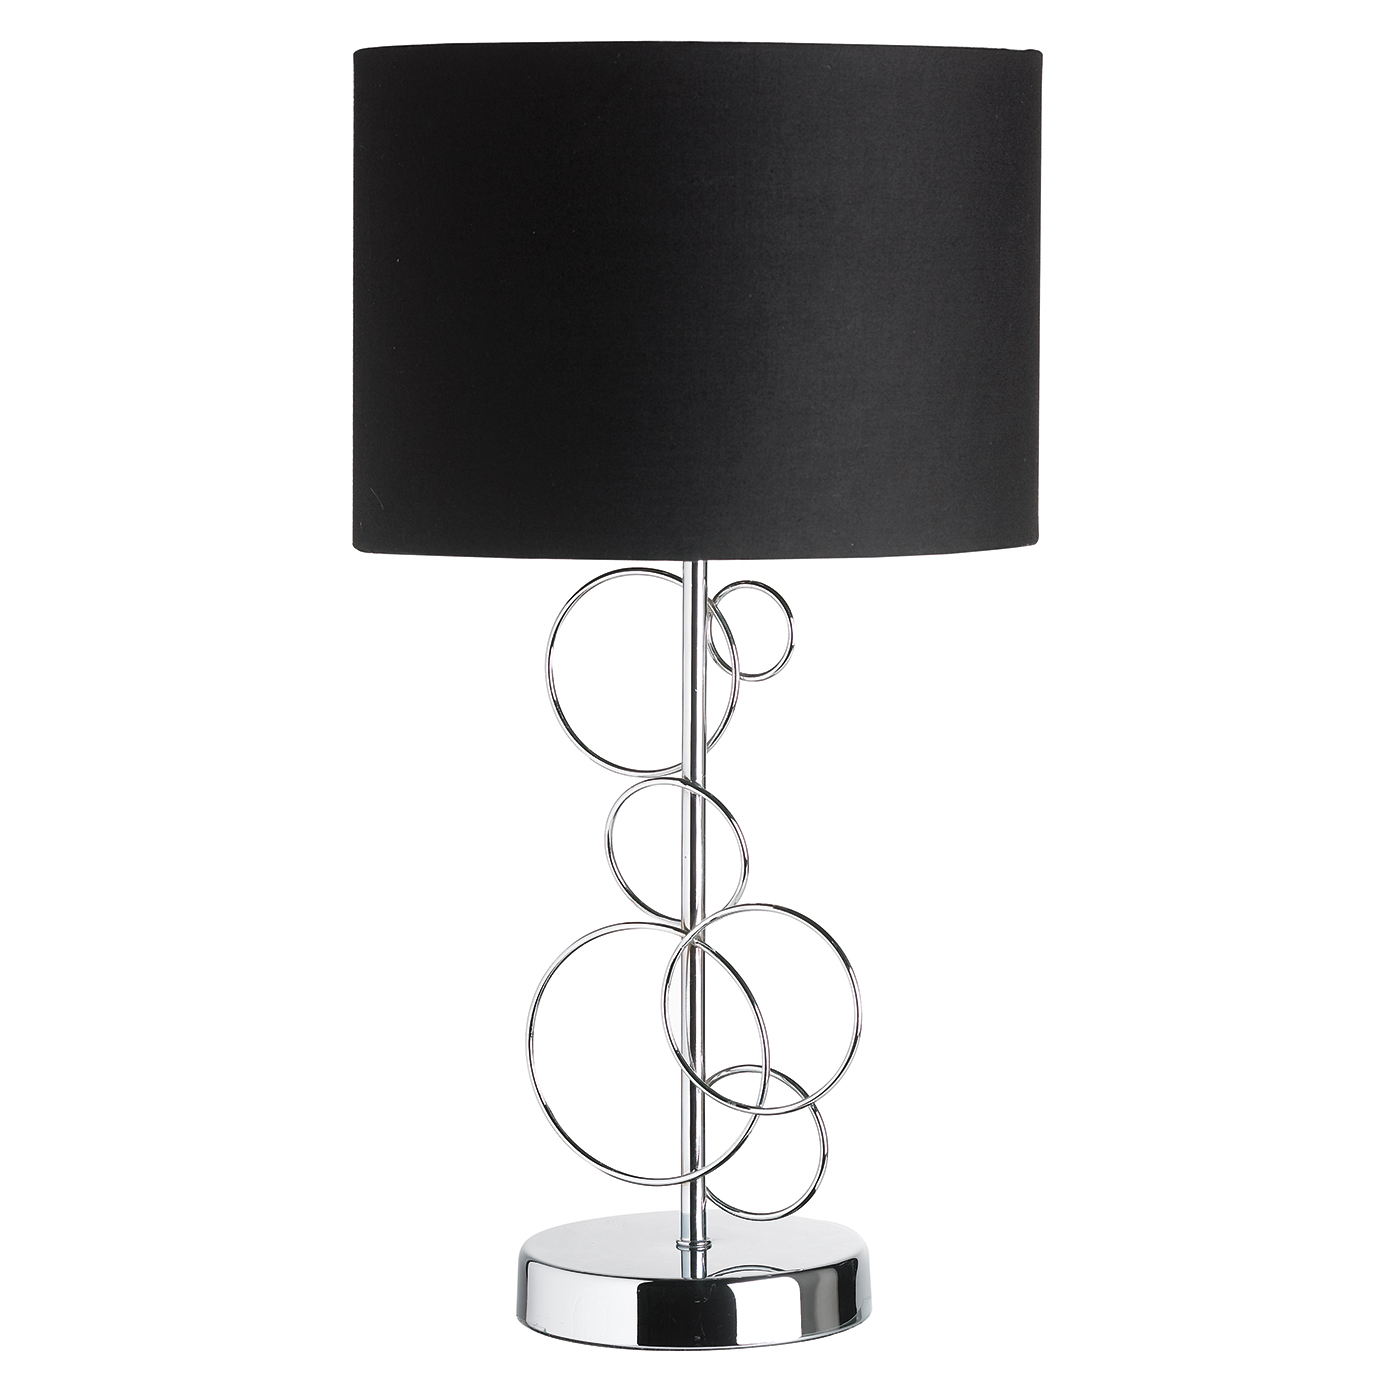 Endon Finchley table lamp 60W Chrome effect plate & black tc fabric